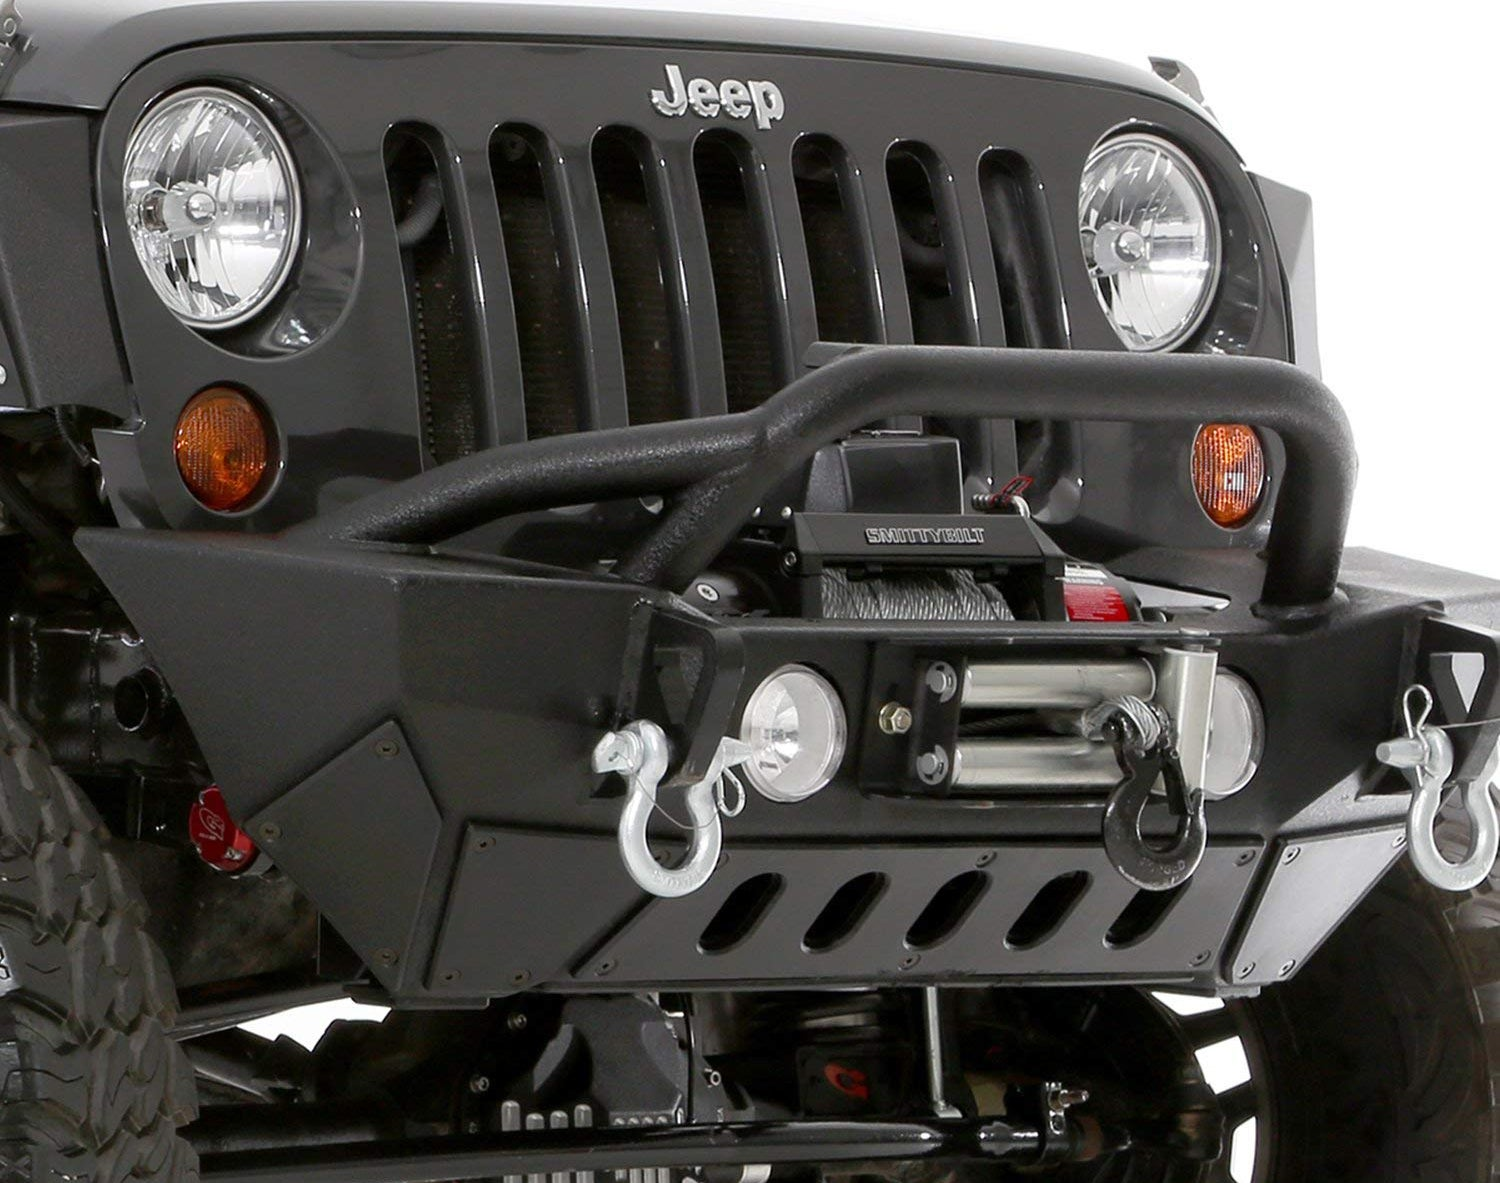 3 Features to Consider Before You Buy an Electric Winch